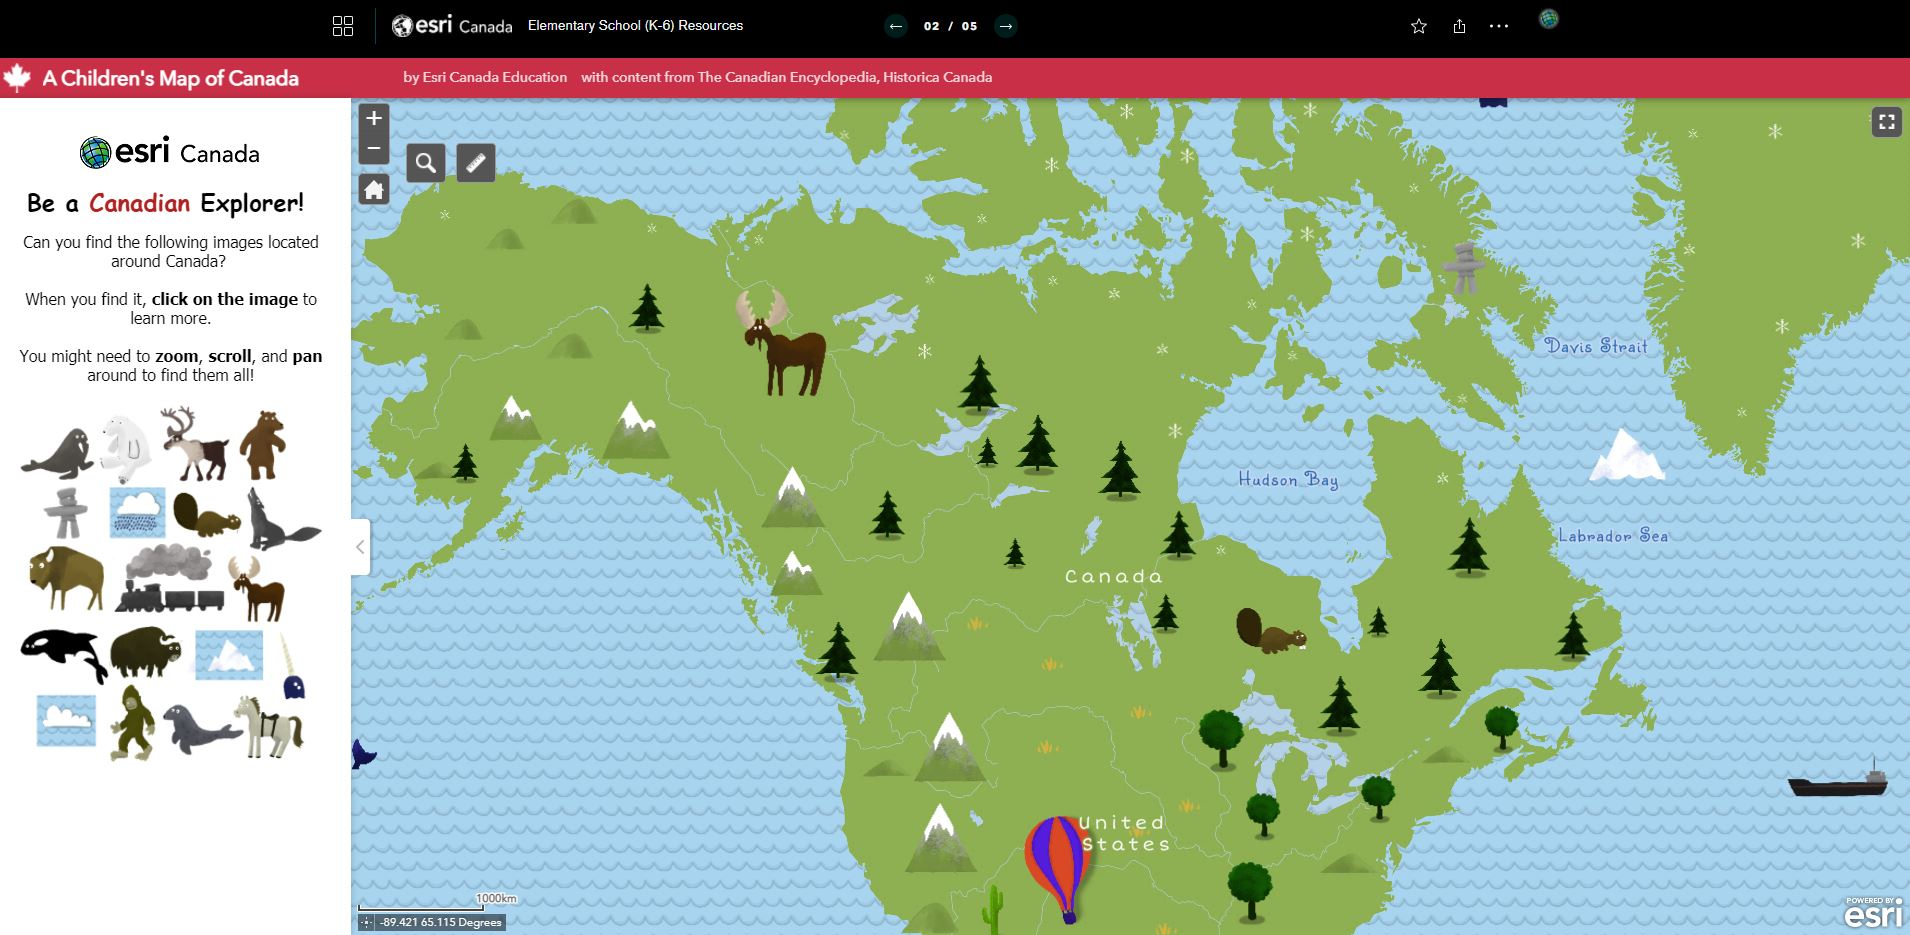 An image displaying a fun map of Canada for young children.